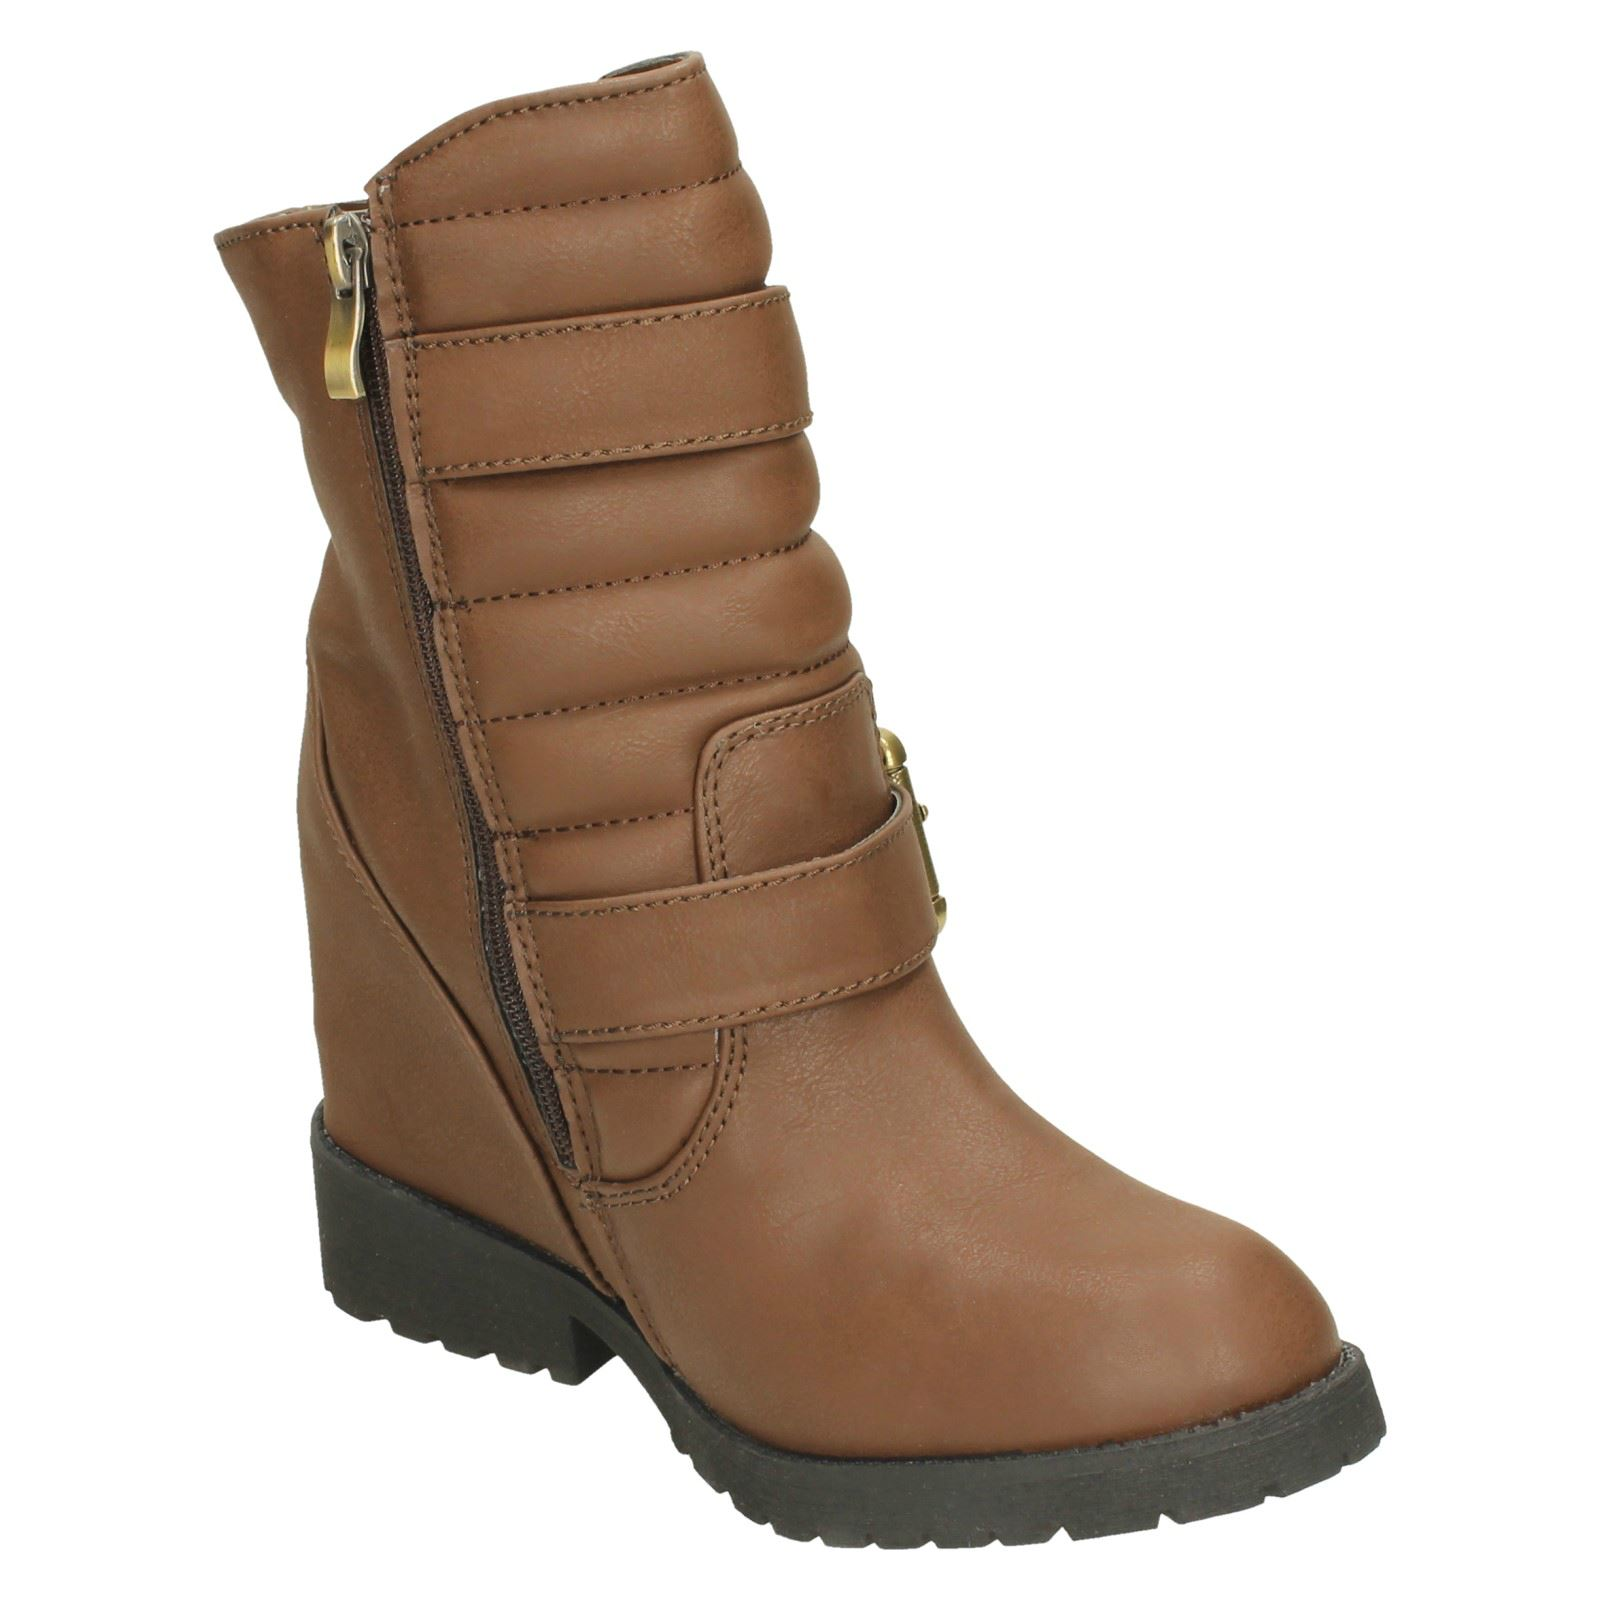 Ladies-Spot-On-Ankle-Boots